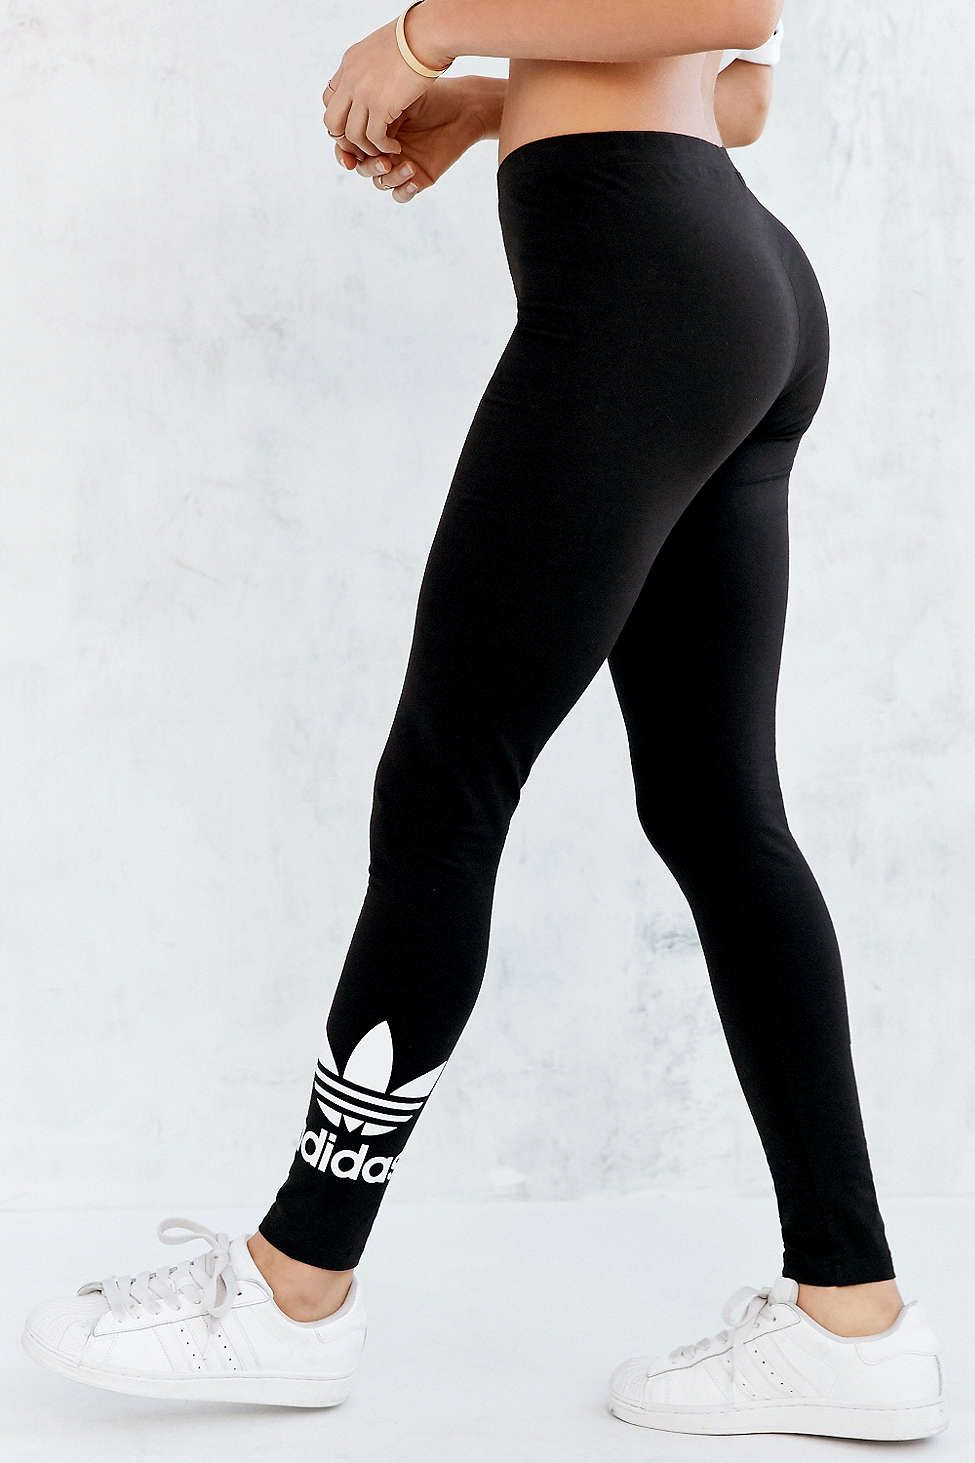 Adidas Pinterest Originals I Want Legging Trefoil TwZpTBq6